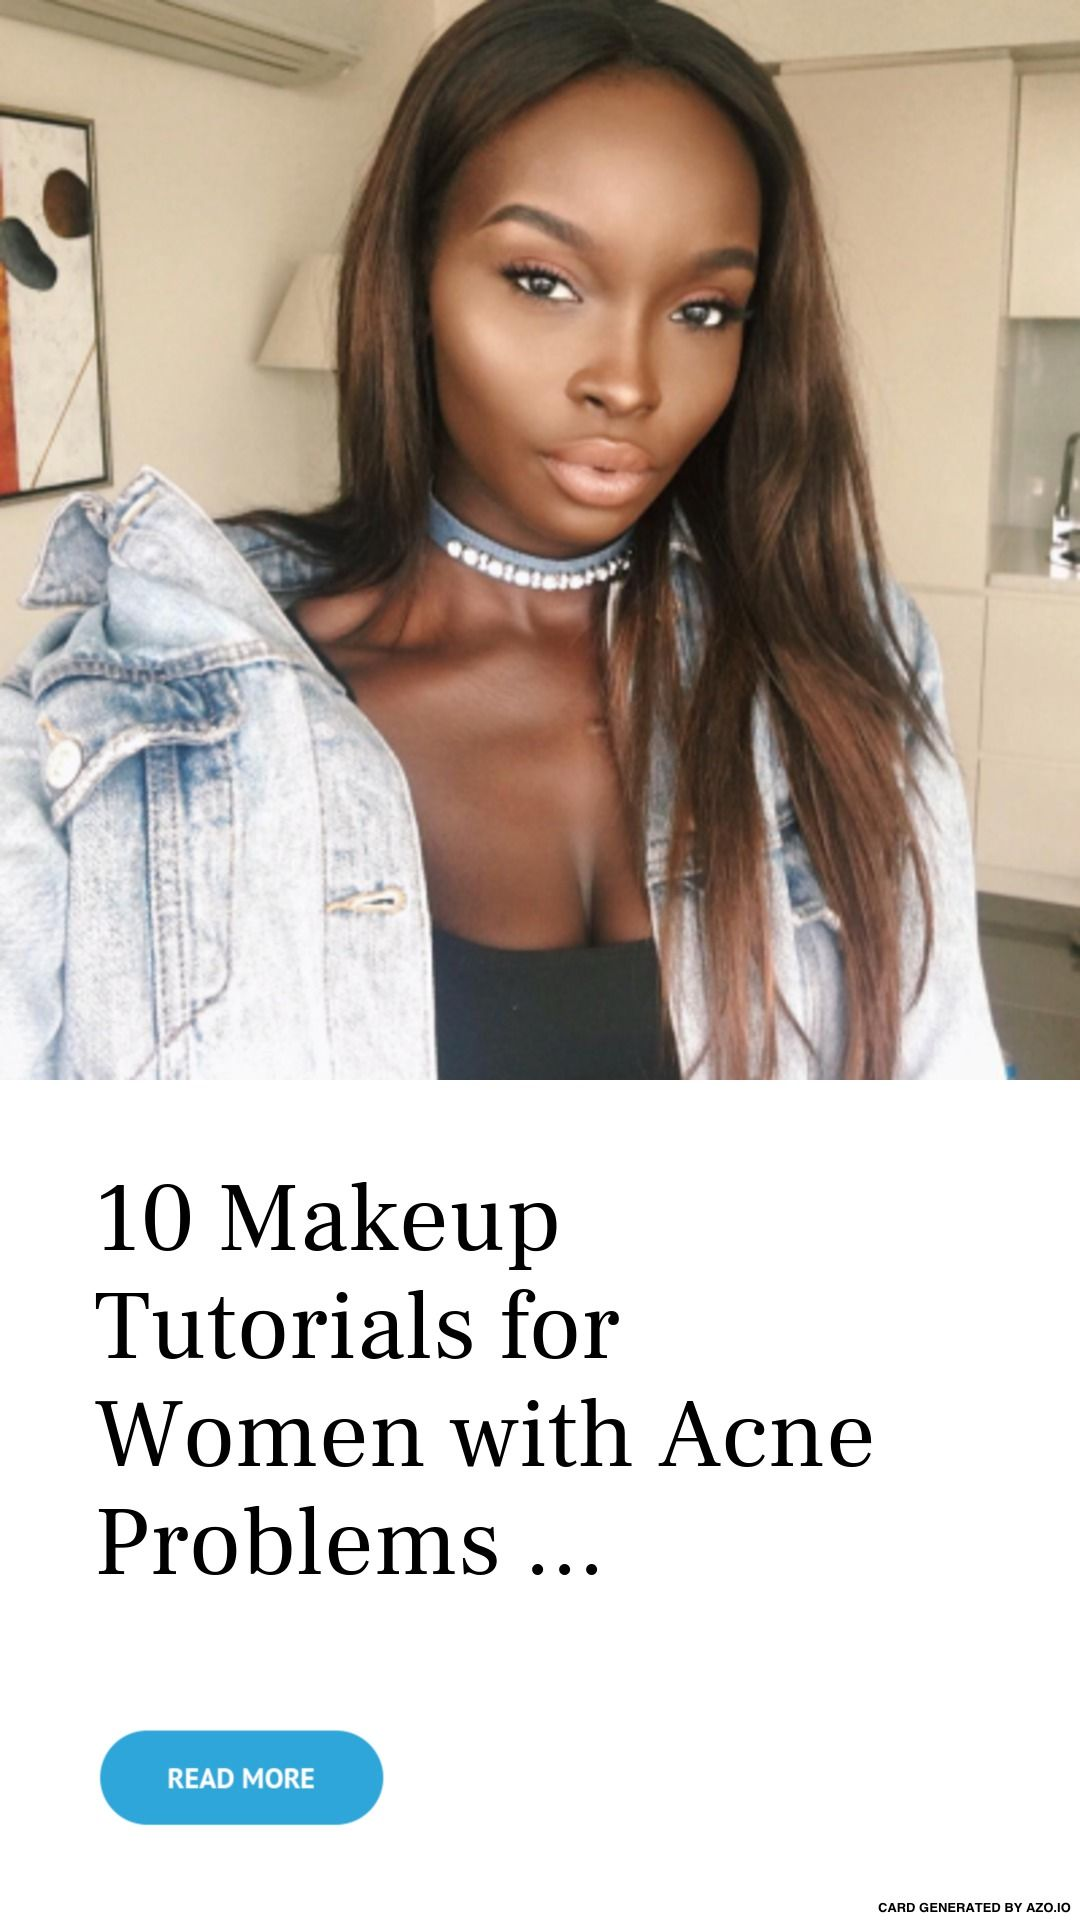 10 Makeup Tutorials for Women with Acne Problems